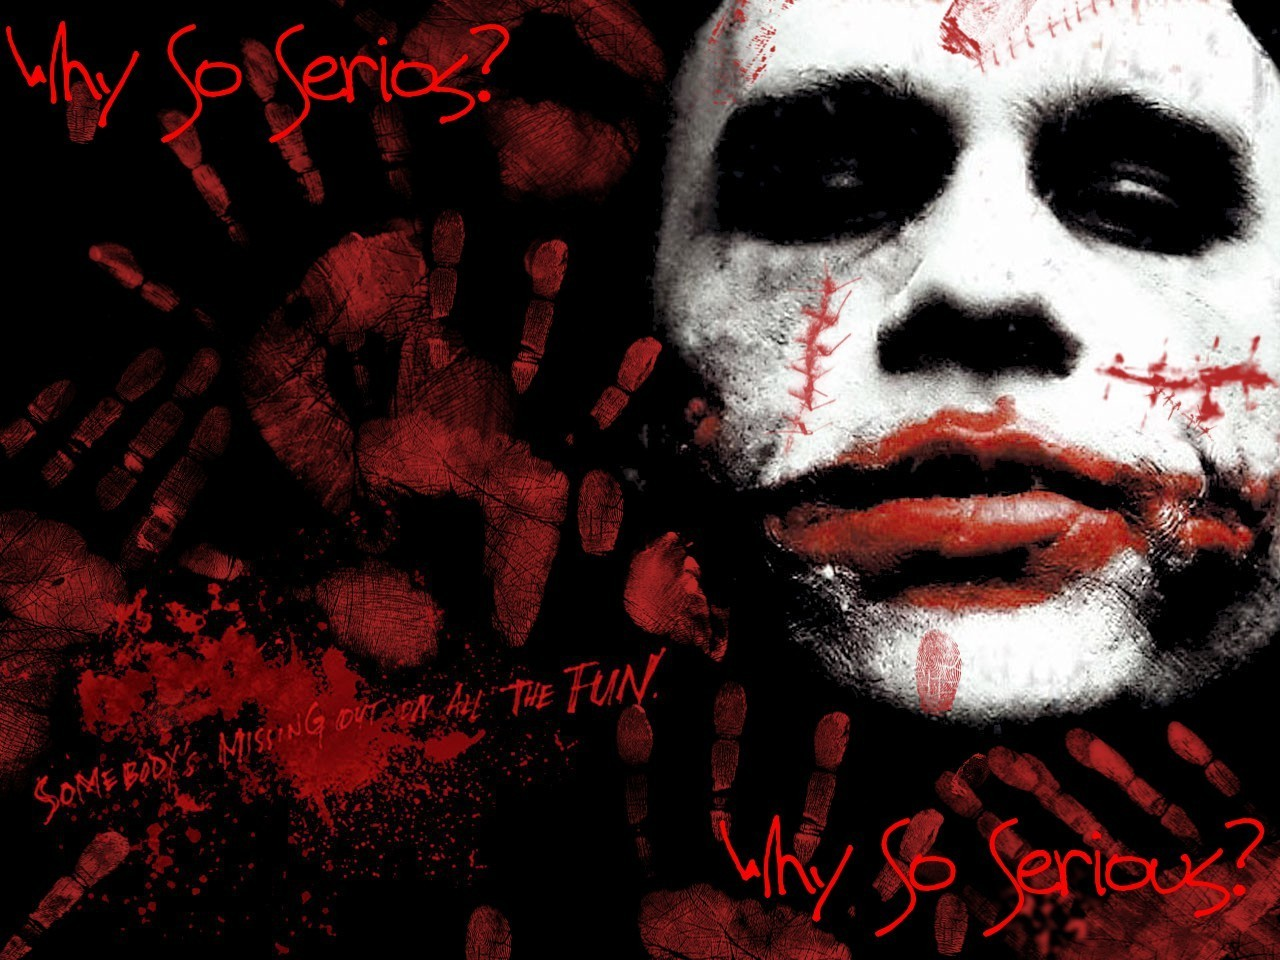 The Joker - Scary Clowns Wallpaper (21767111) - Fanpop fanclubs